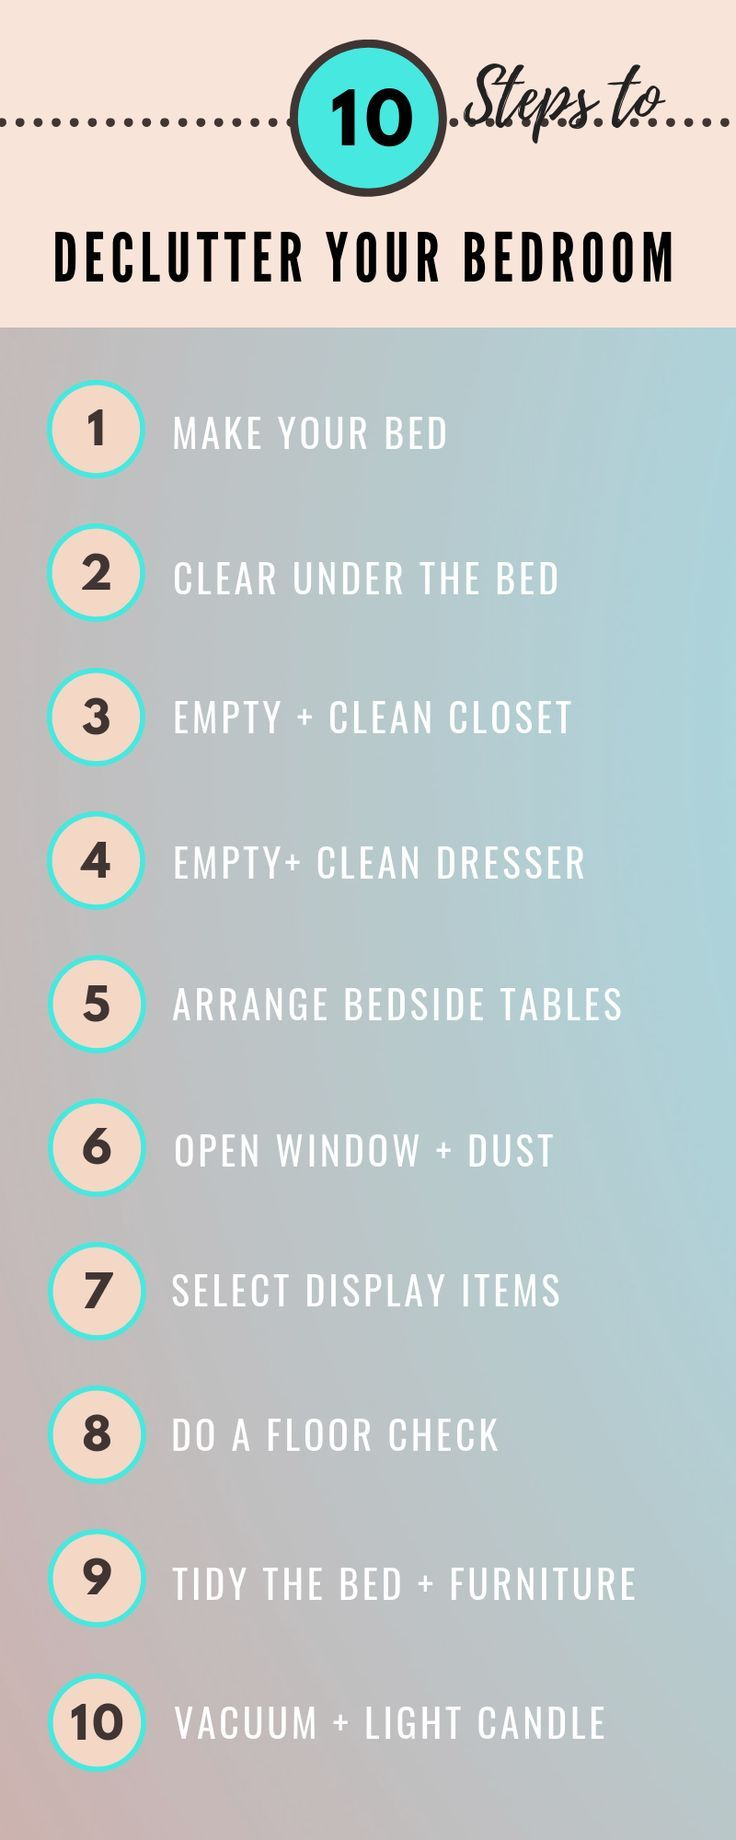 13db8a5b353f97be0a733ee759bdd89d The best way to declutter your bedroom in 10 steps. Youll see the very best bed...